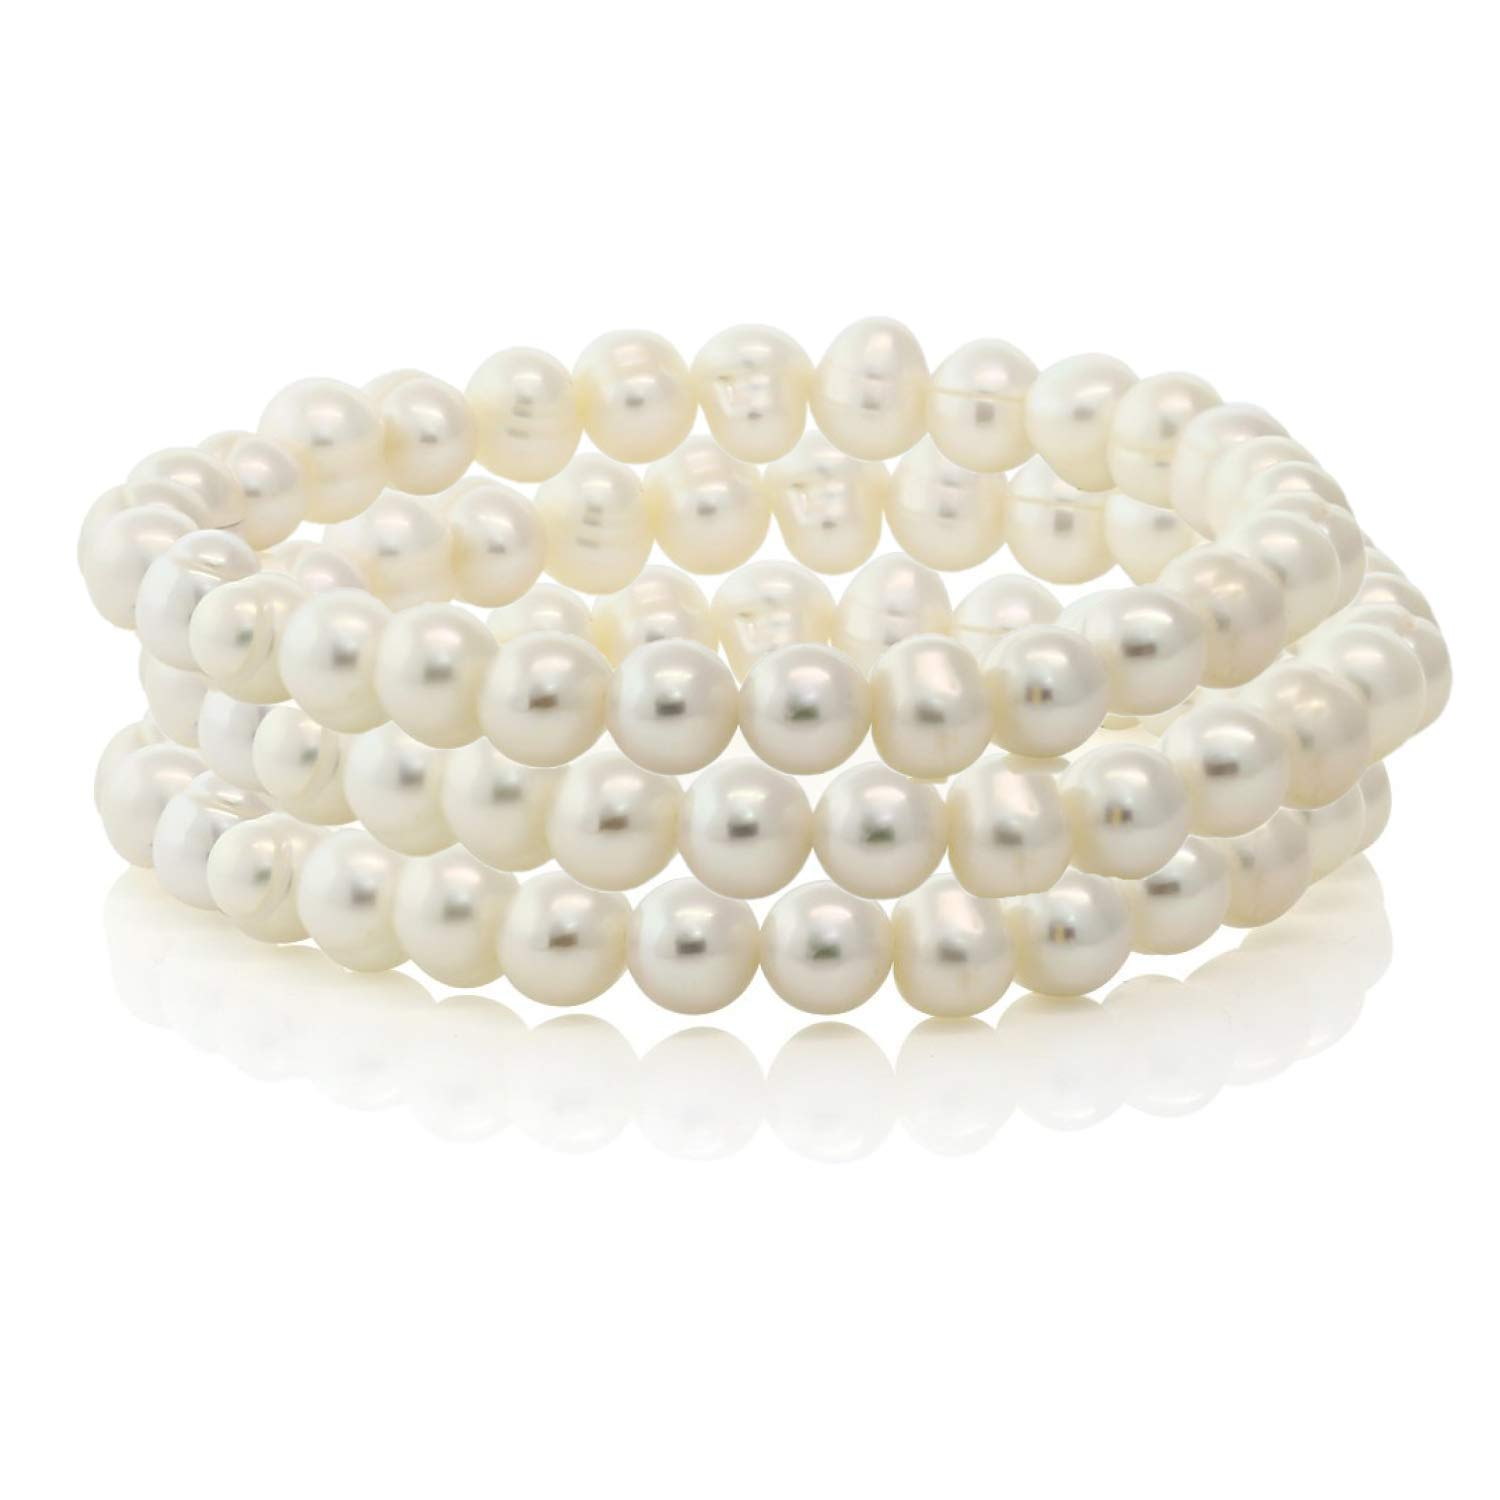 Set of 3 Stretch Bracelets White Freshwater Cultured Off-Shape Pearls Adjustable Fit by Splendid Pearls